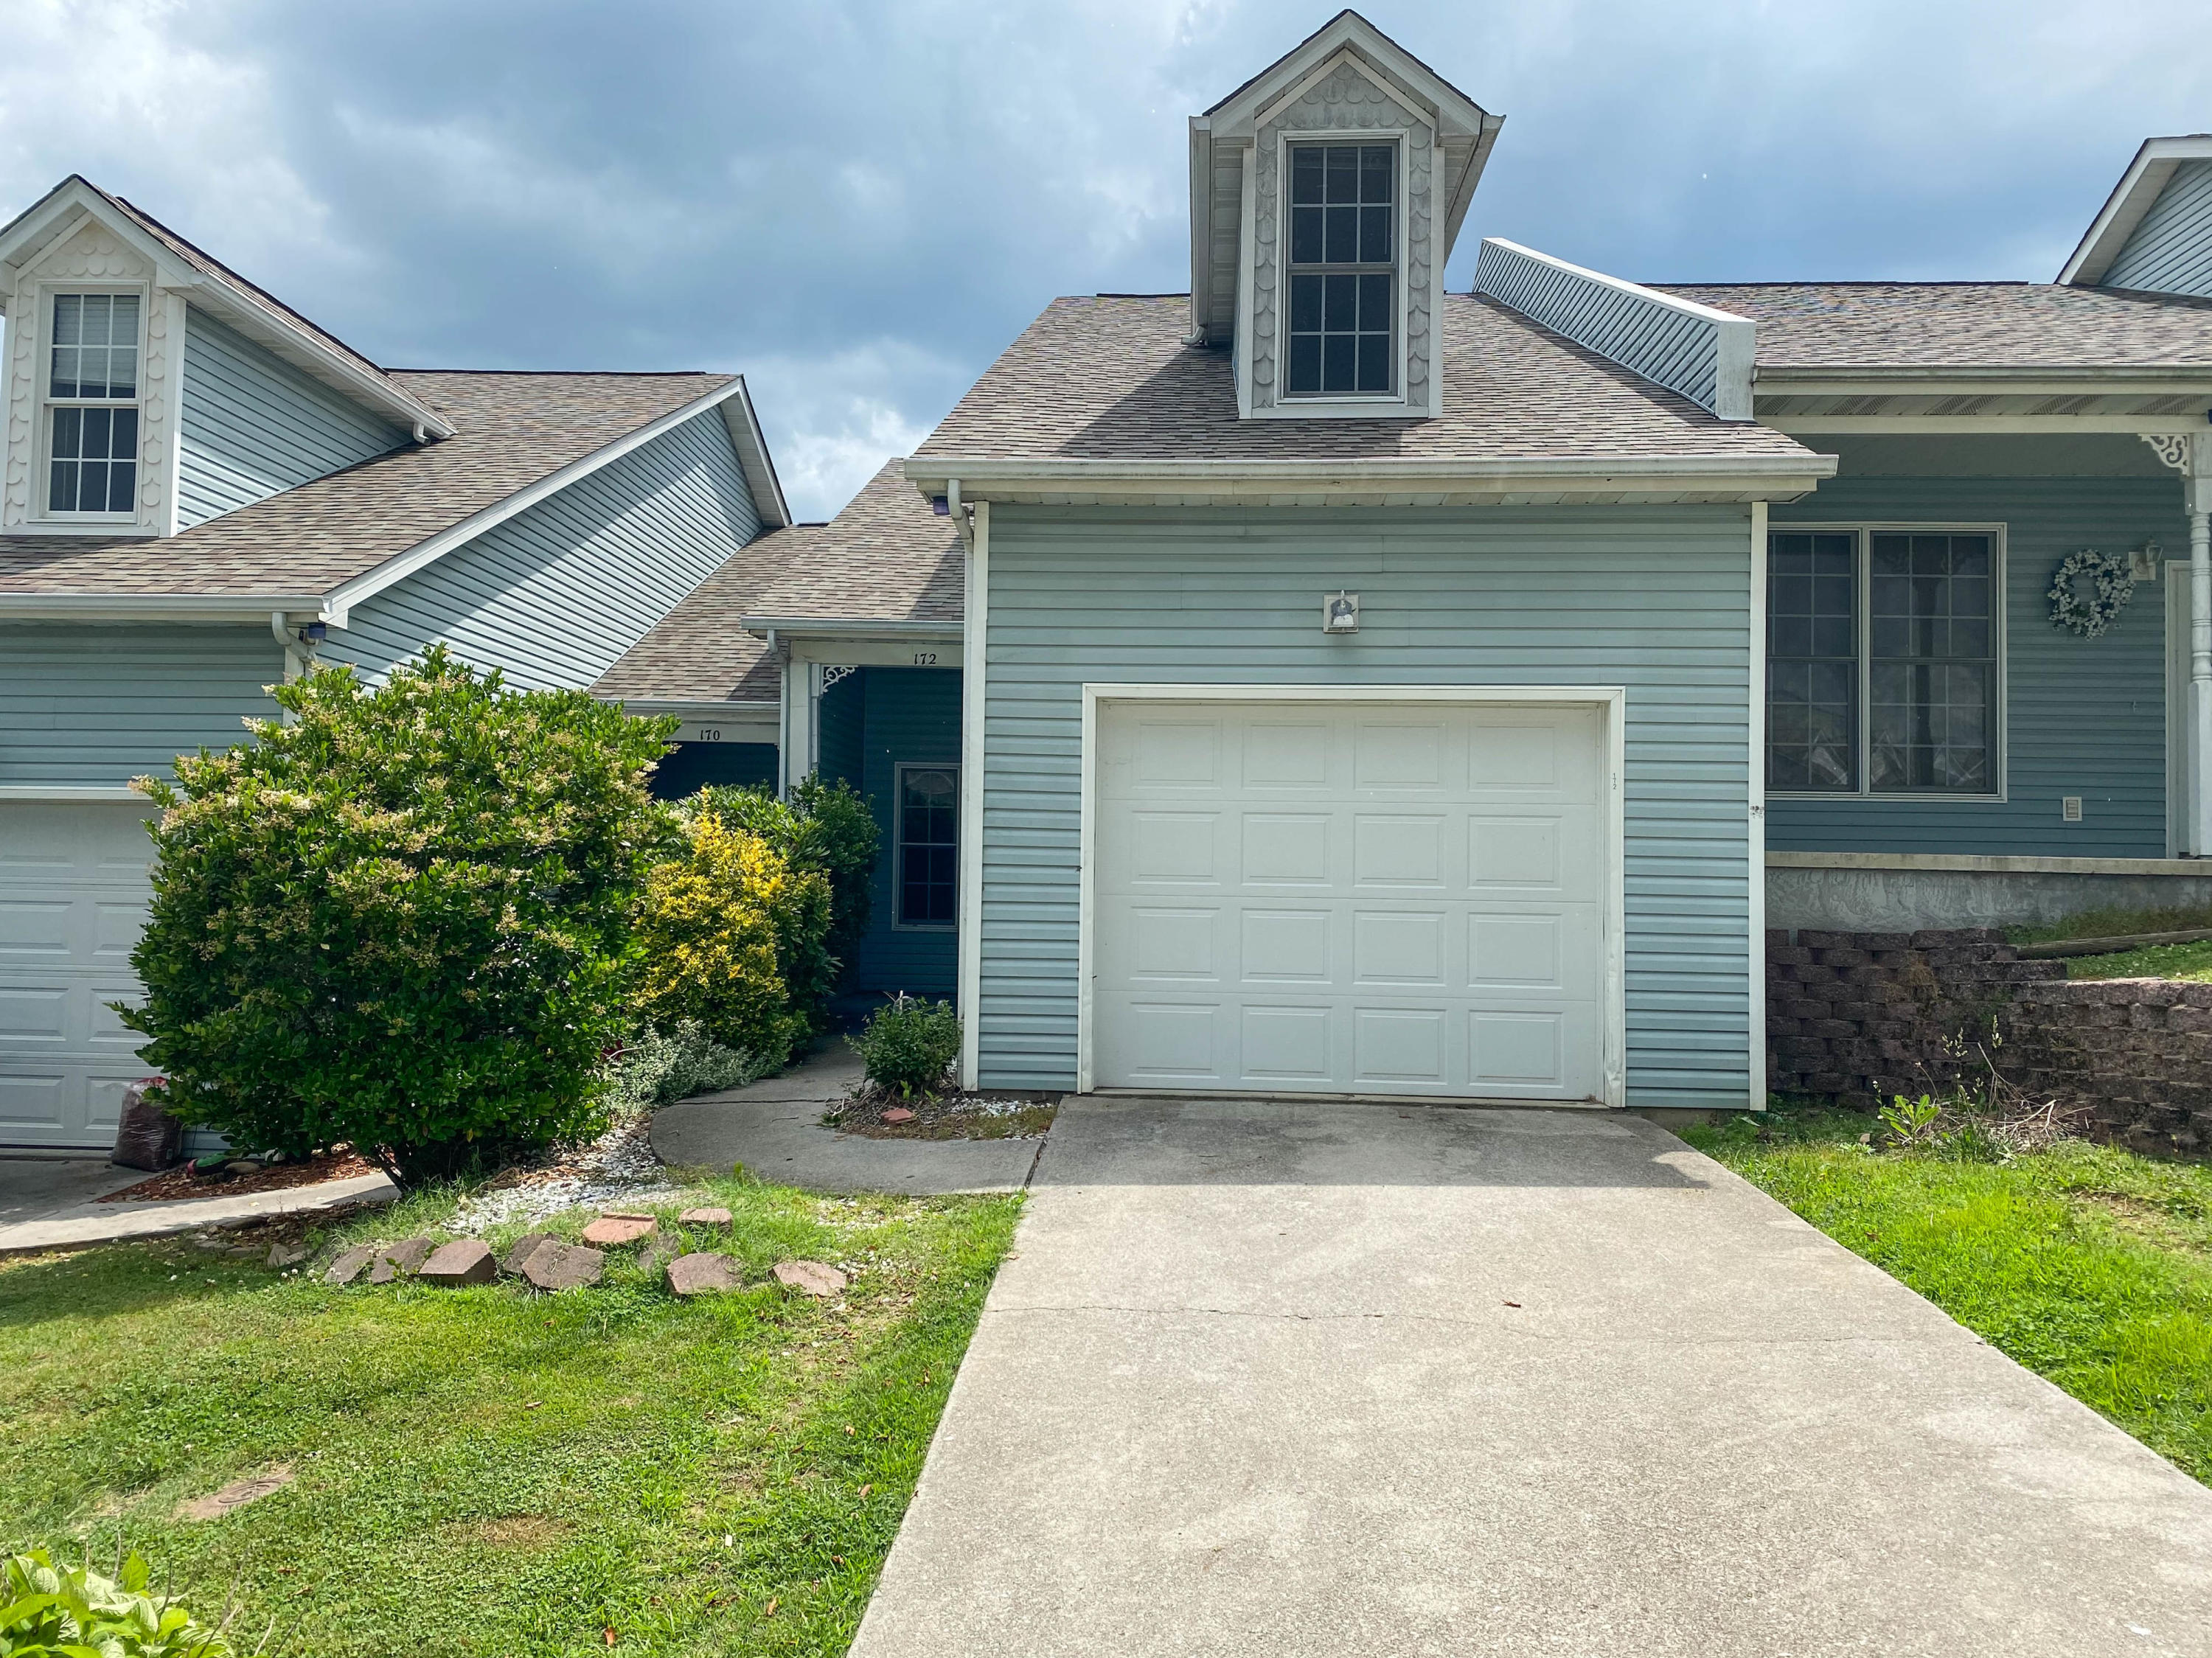 172 Victorias Landing, Sevierville, Tennessee 37862, 3 Bedrooms Bedrooms, ,2 BathroomsBathrooms,Single Family,For Sale,Victorias Landing,1119449